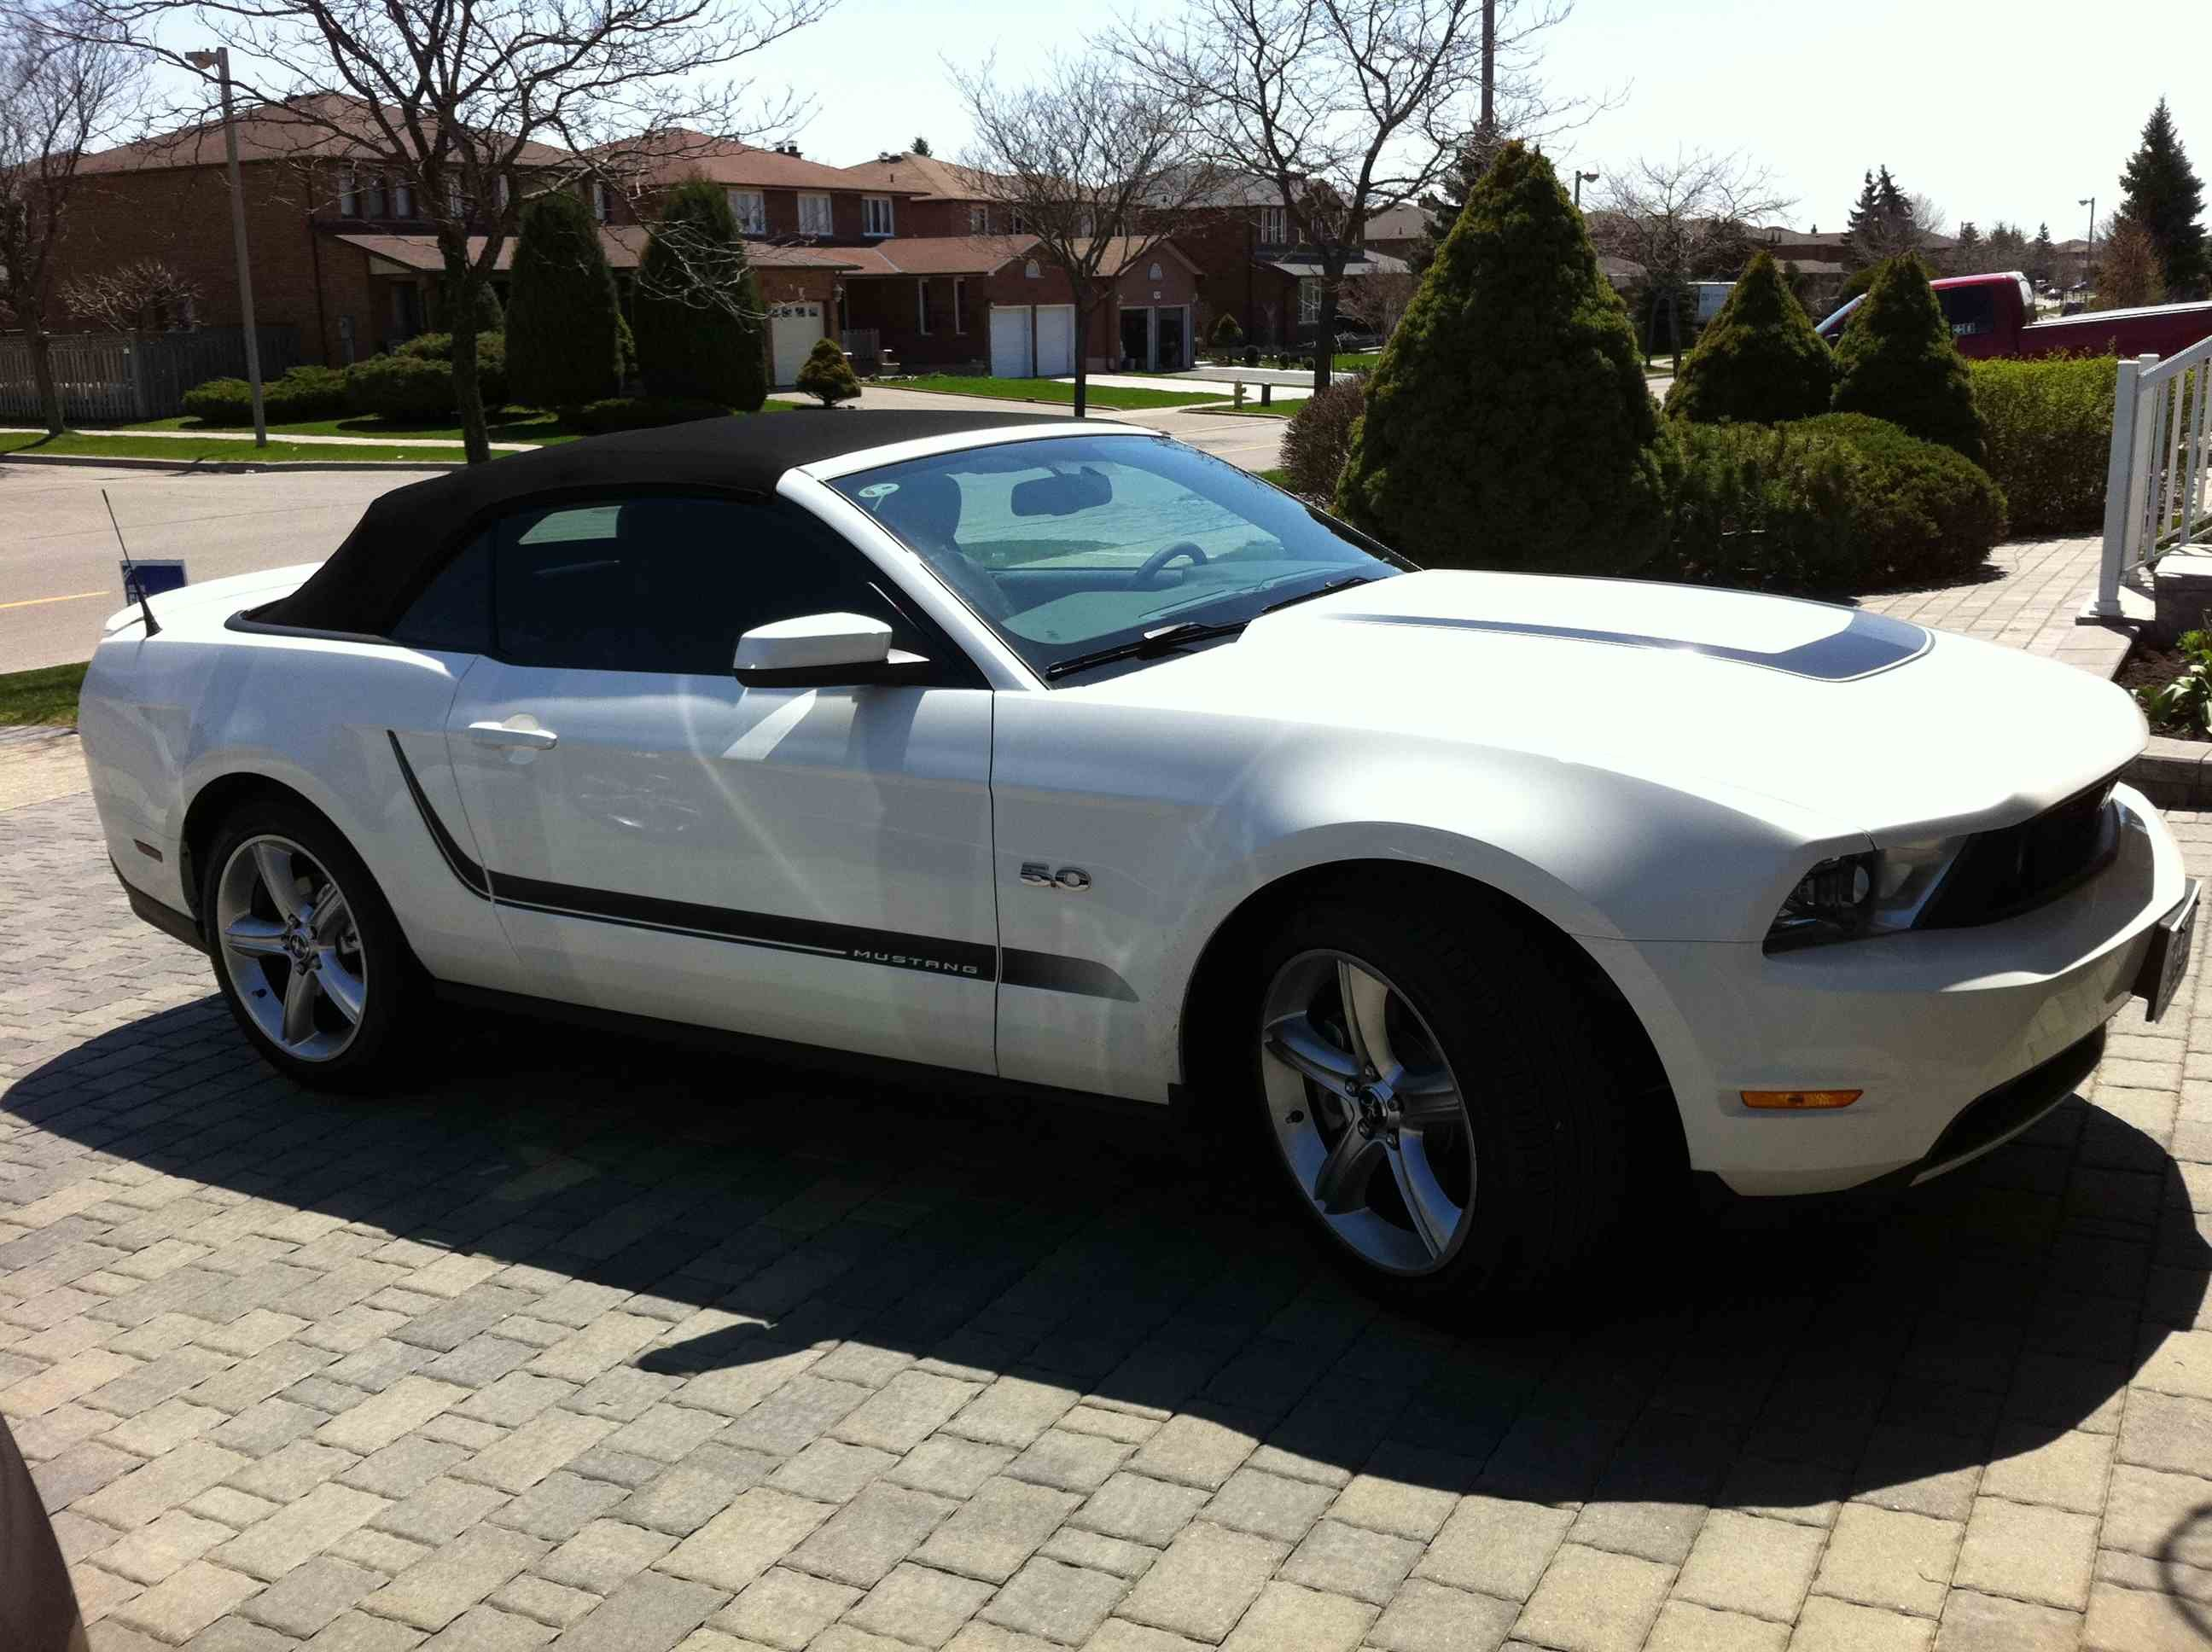 click image for larger versionnameimg_0166_2jpgviews8361size2896 - Mustang 2012 White